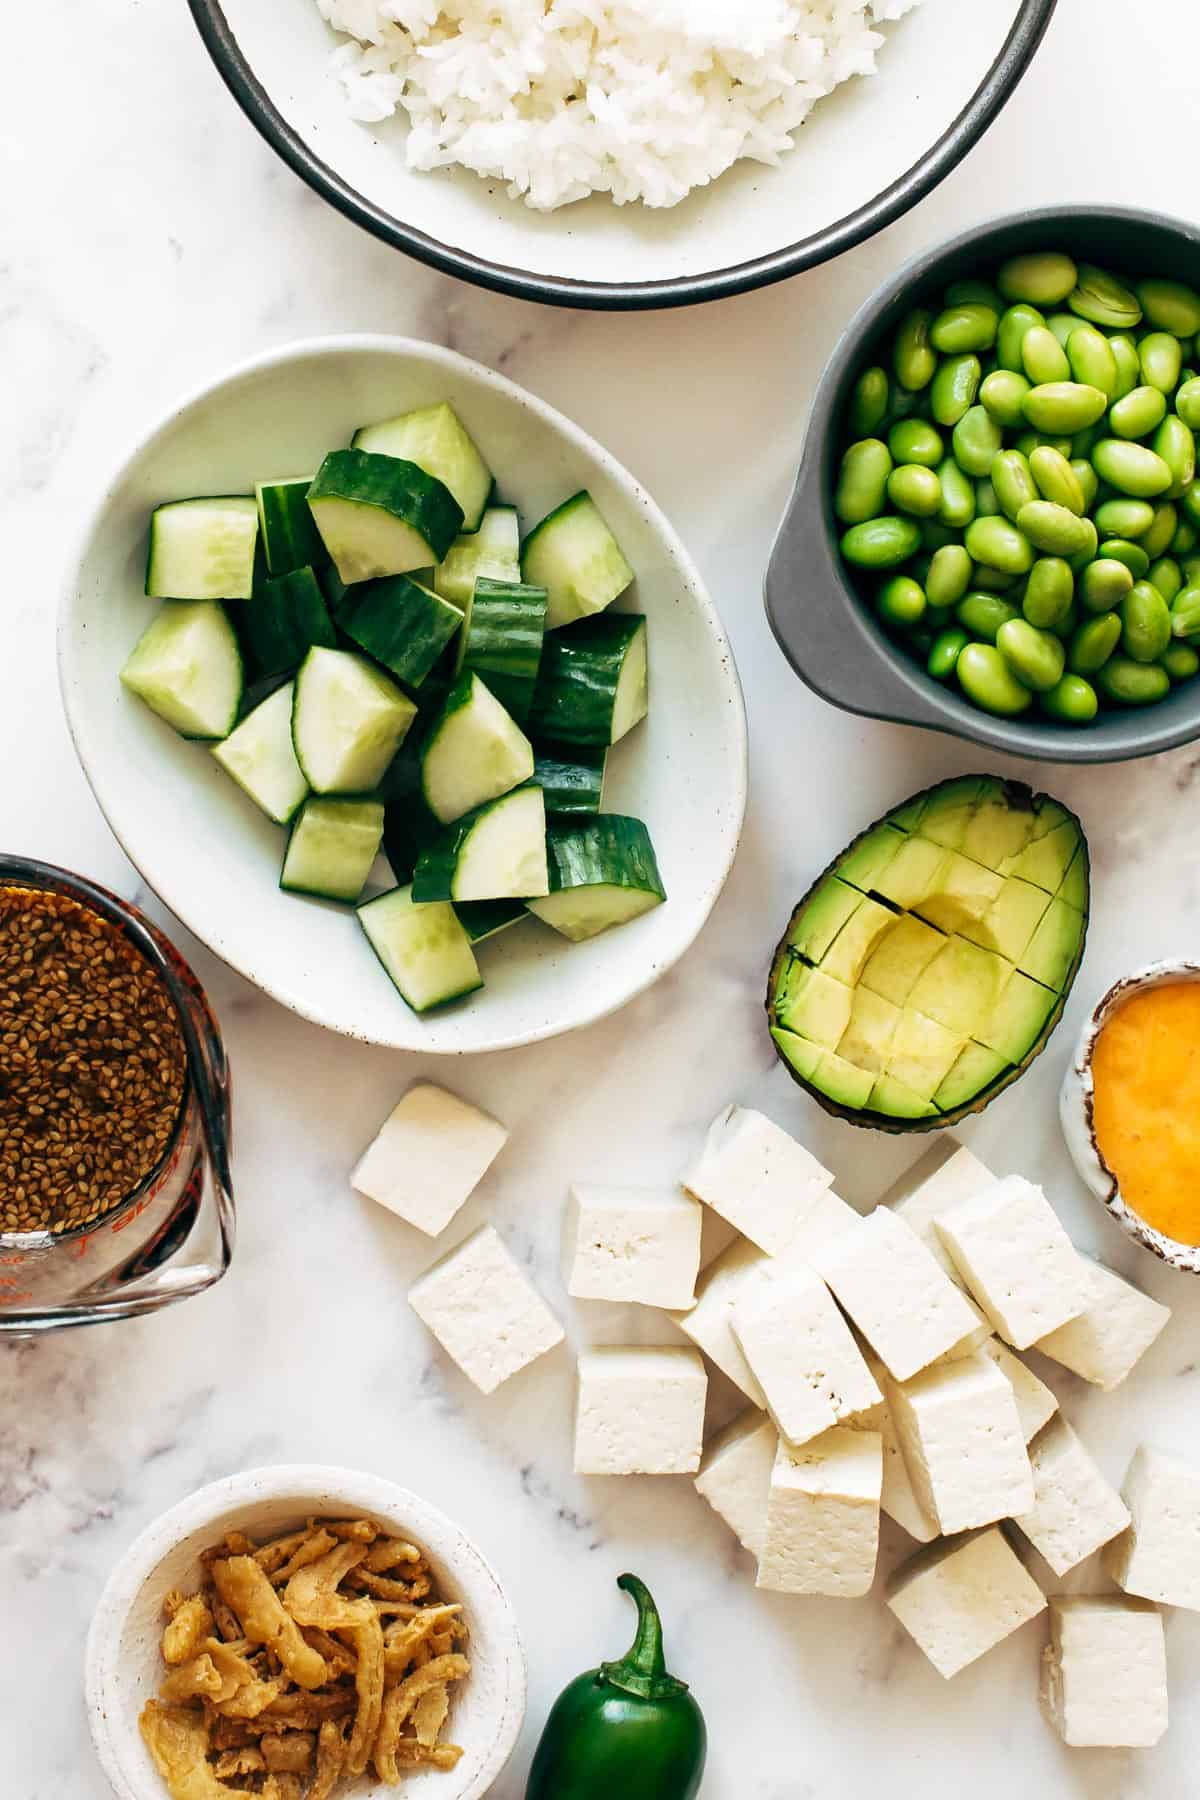 Ingredients in bowls for Crunchy Roll Bowls - rice, cucumber, edamame, tofu, avocado, sauce.